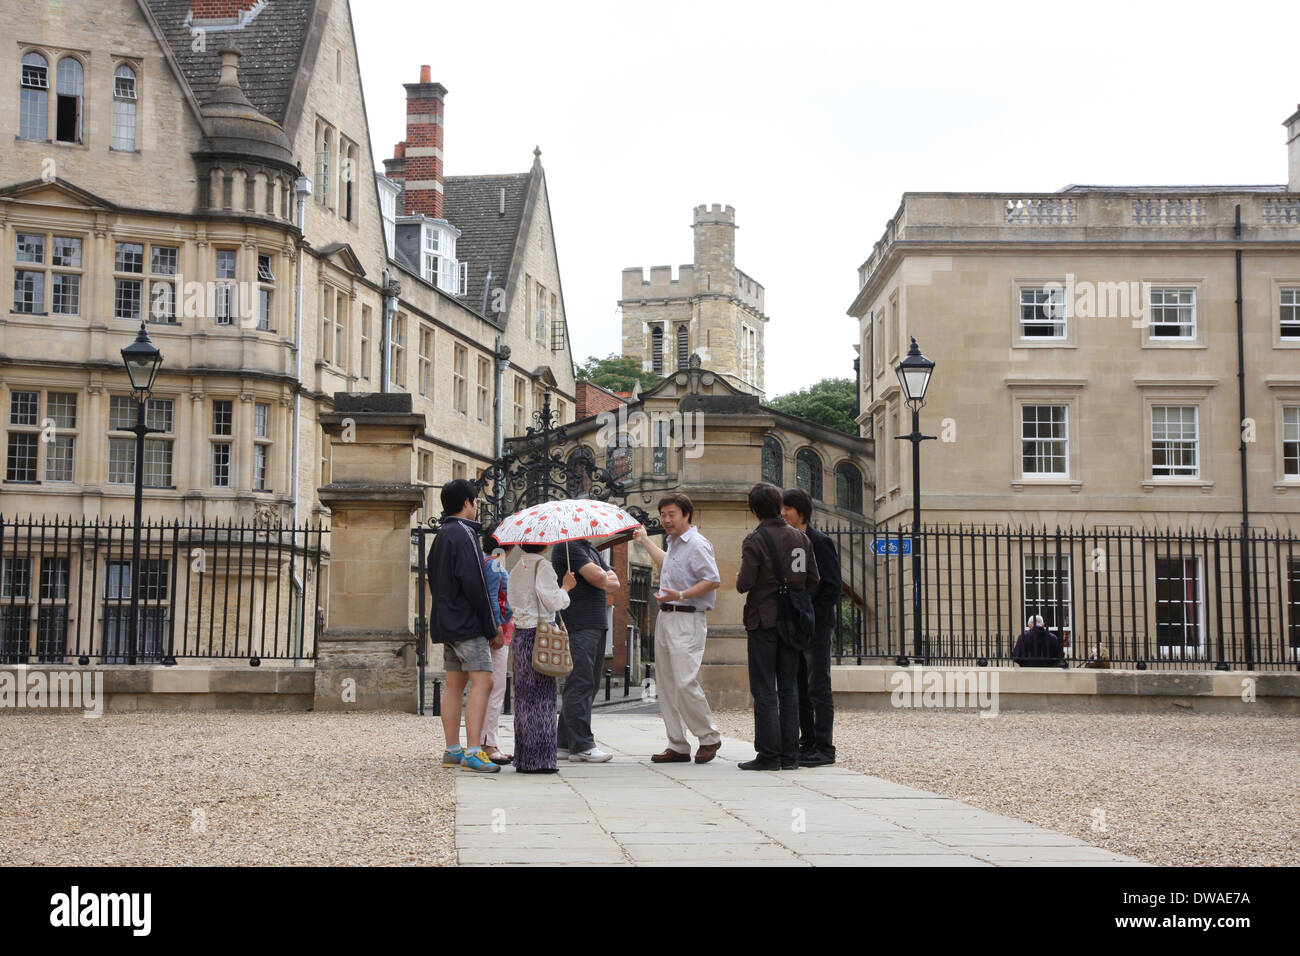 Tourists in Oxford viewing the colleges. - Stock Image